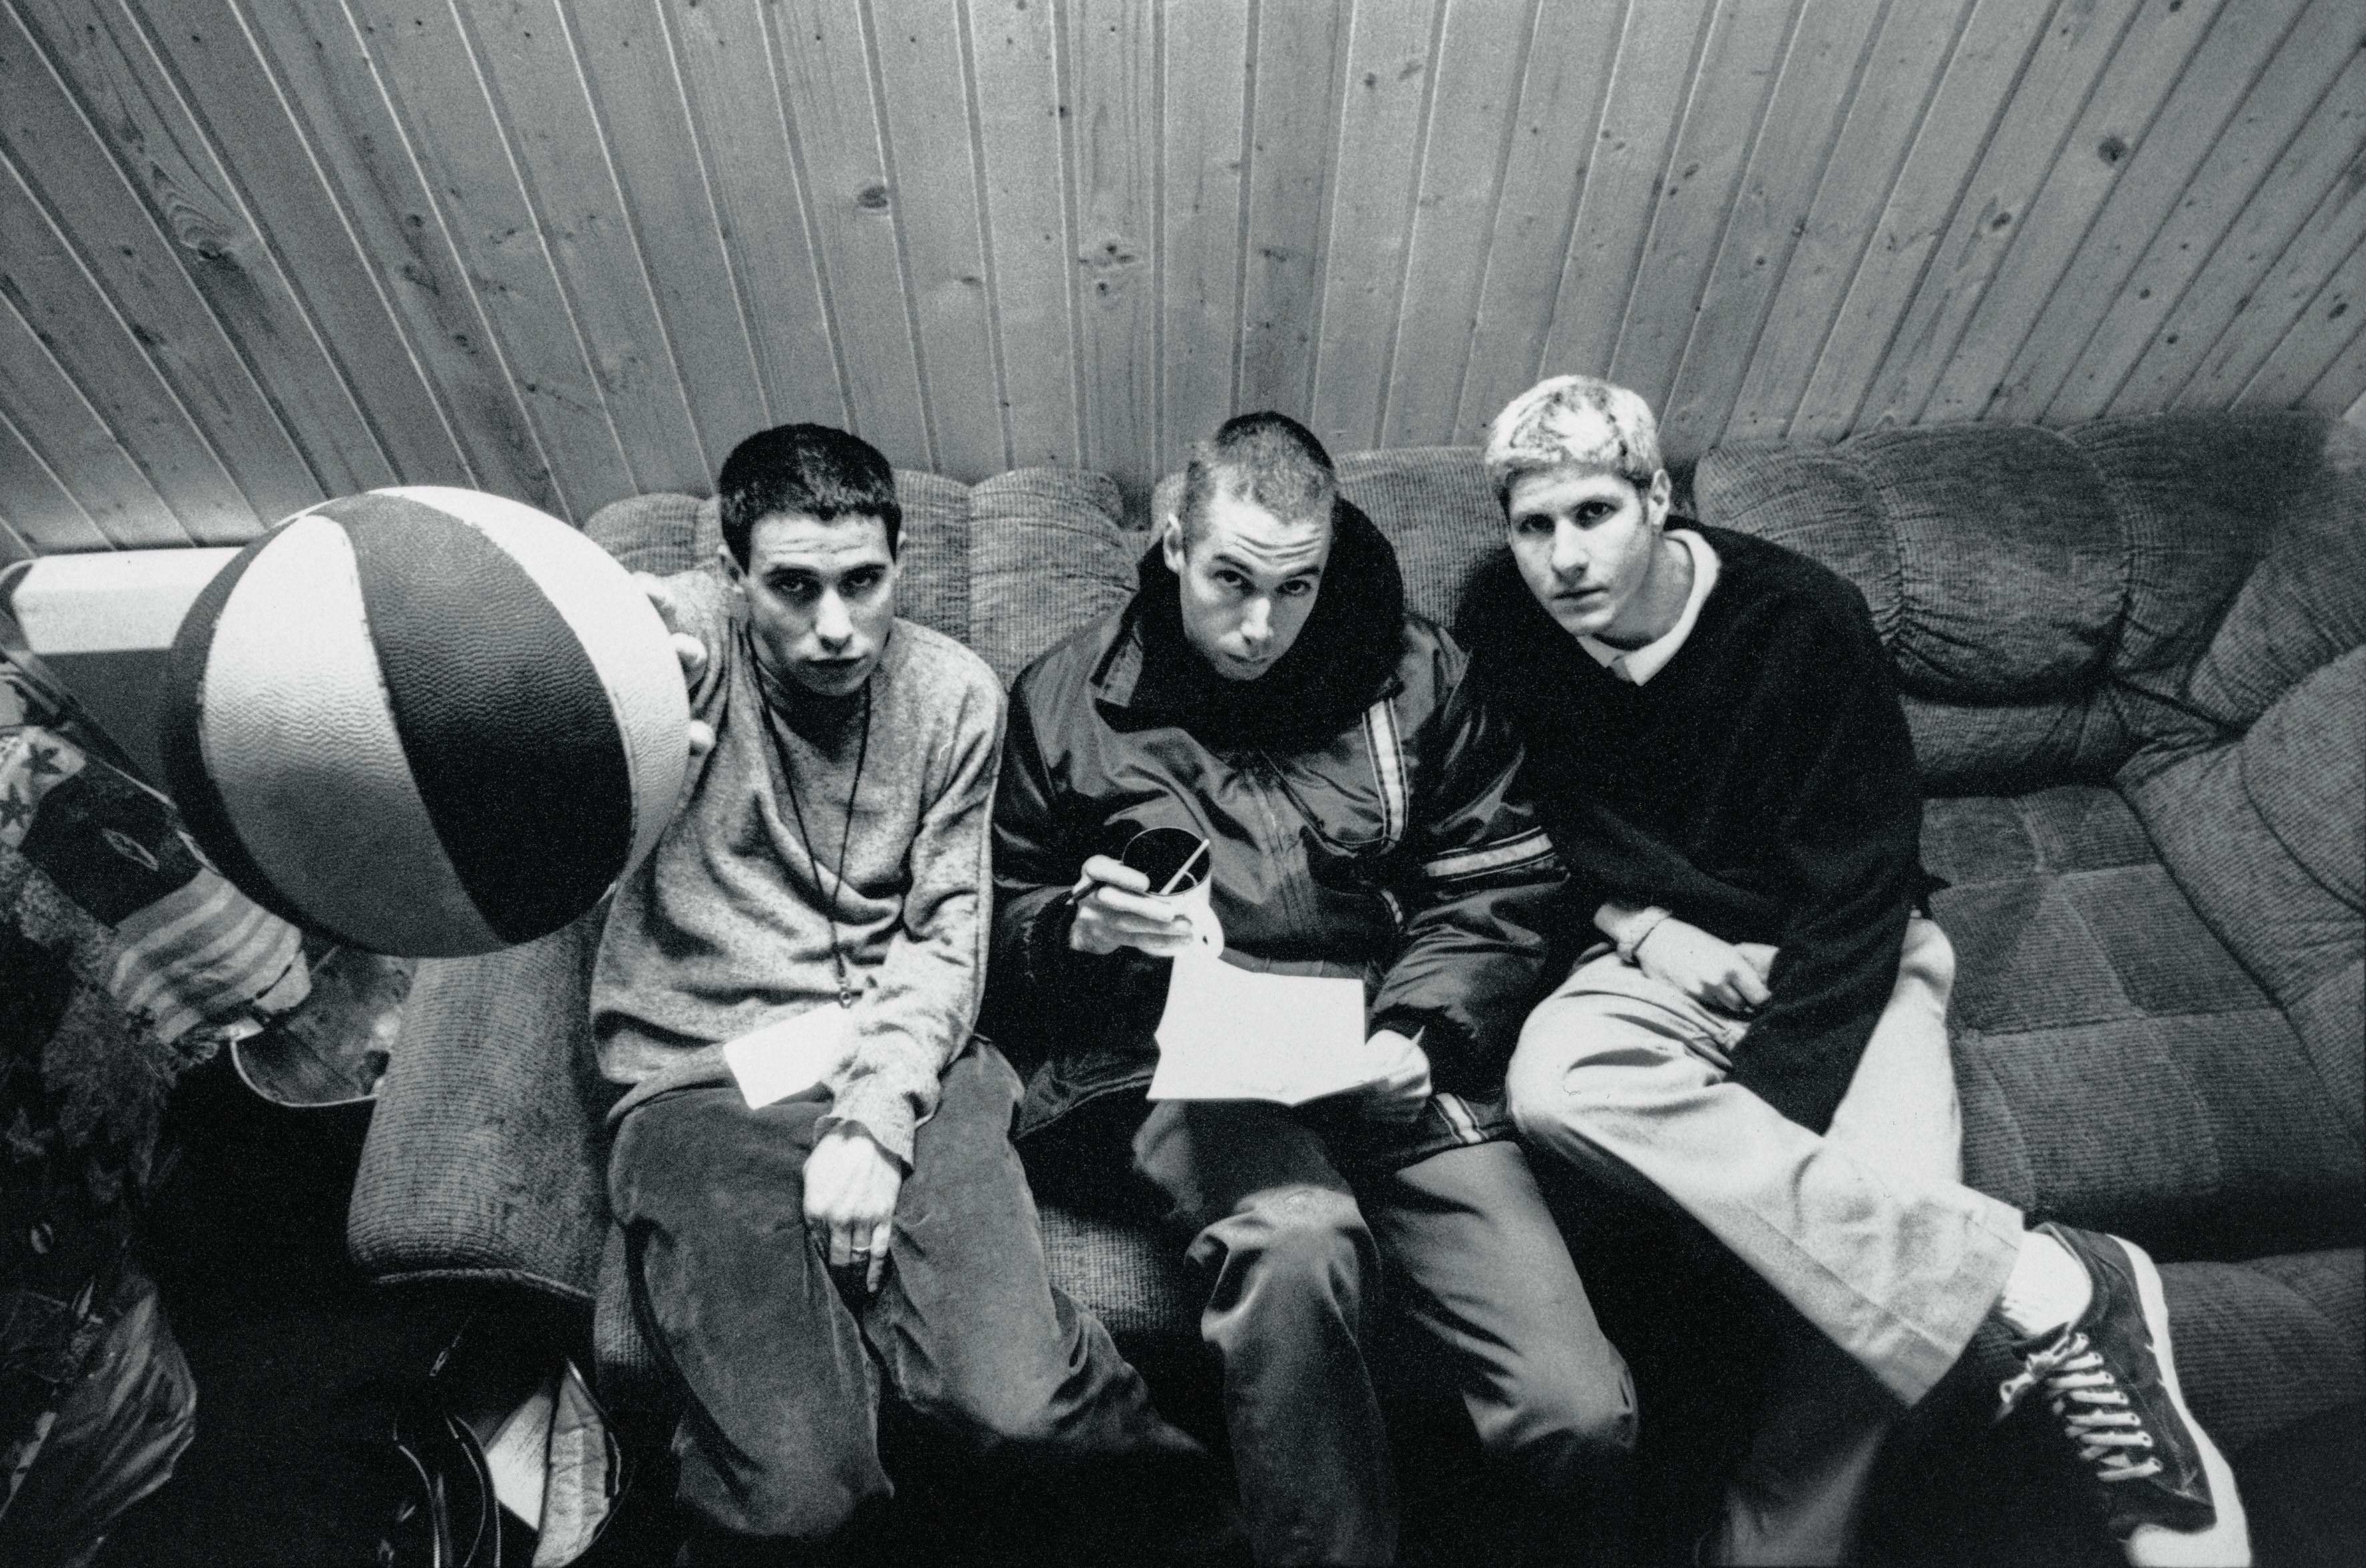 The Beastie Boys shortly after Ill Communication became the first of their three consecutive No. 1 albums for Capitol. Photo: Ari Marcopoulos, Vienna, 1995. © Ari Marcopoulos.